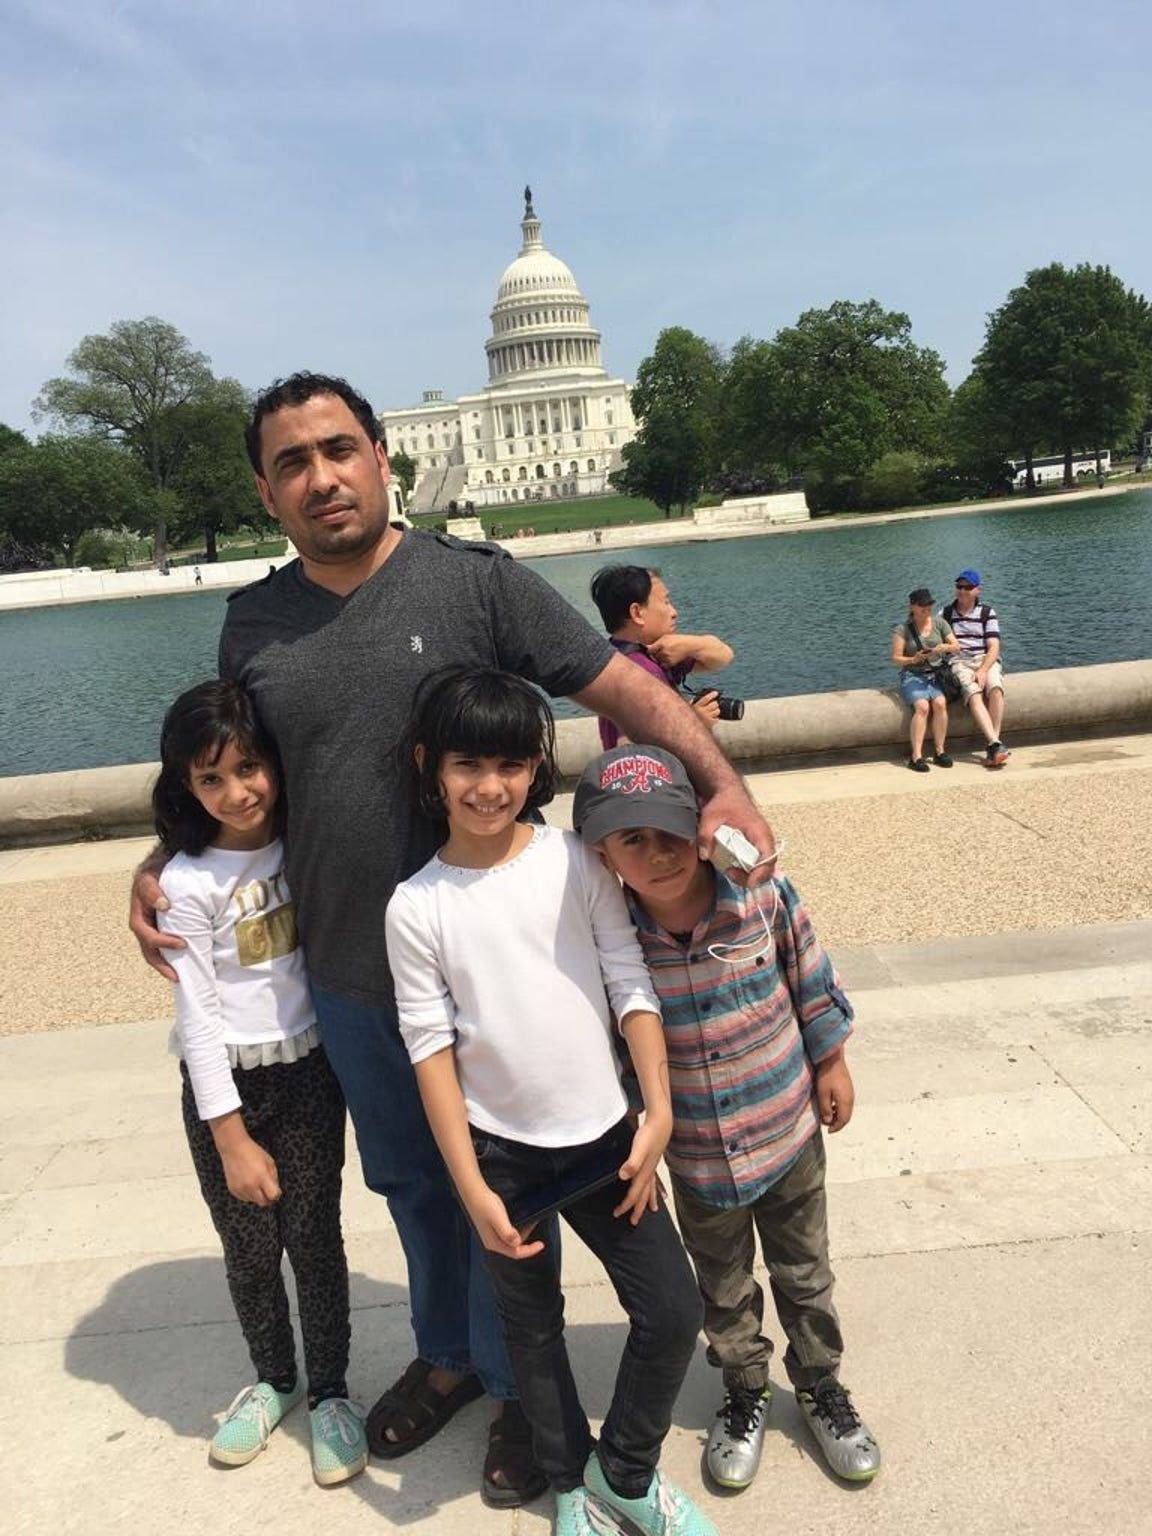 From left to right: Sham Abu-HJaze, Anas Abu-HJaze, Fagar Abu-HJaze and Wisam Abu-HJaze pose for a photo while visiting Washington, D.C.